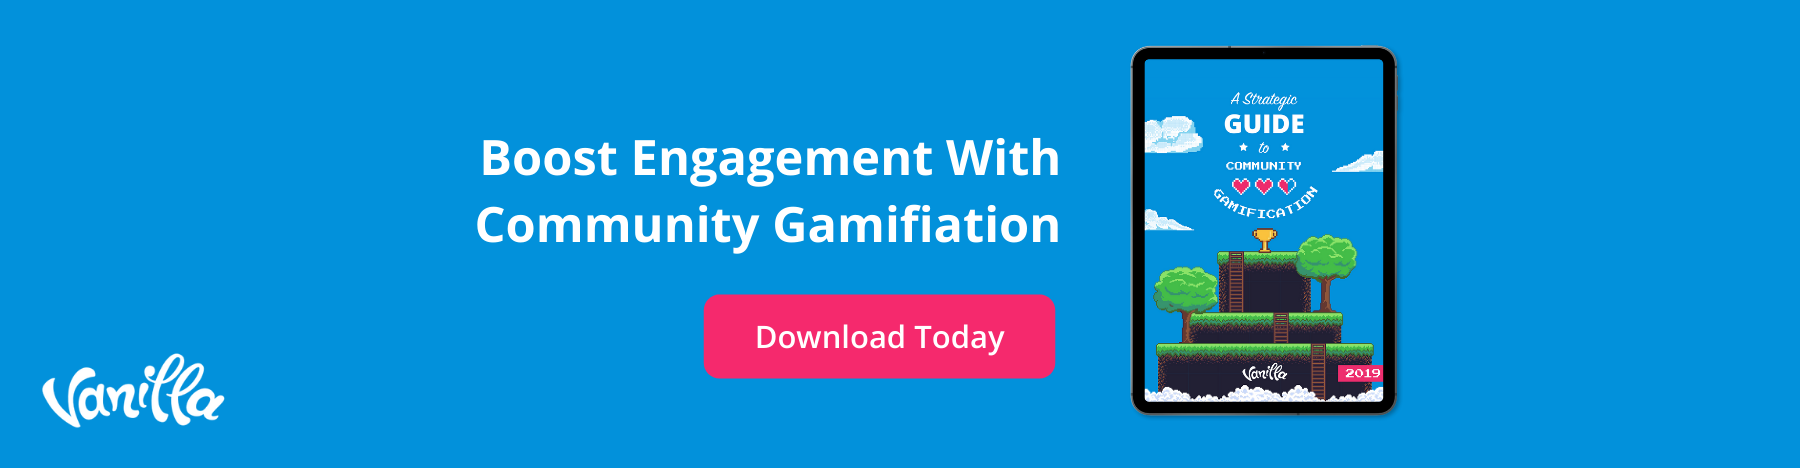 Strategic Community Gamification